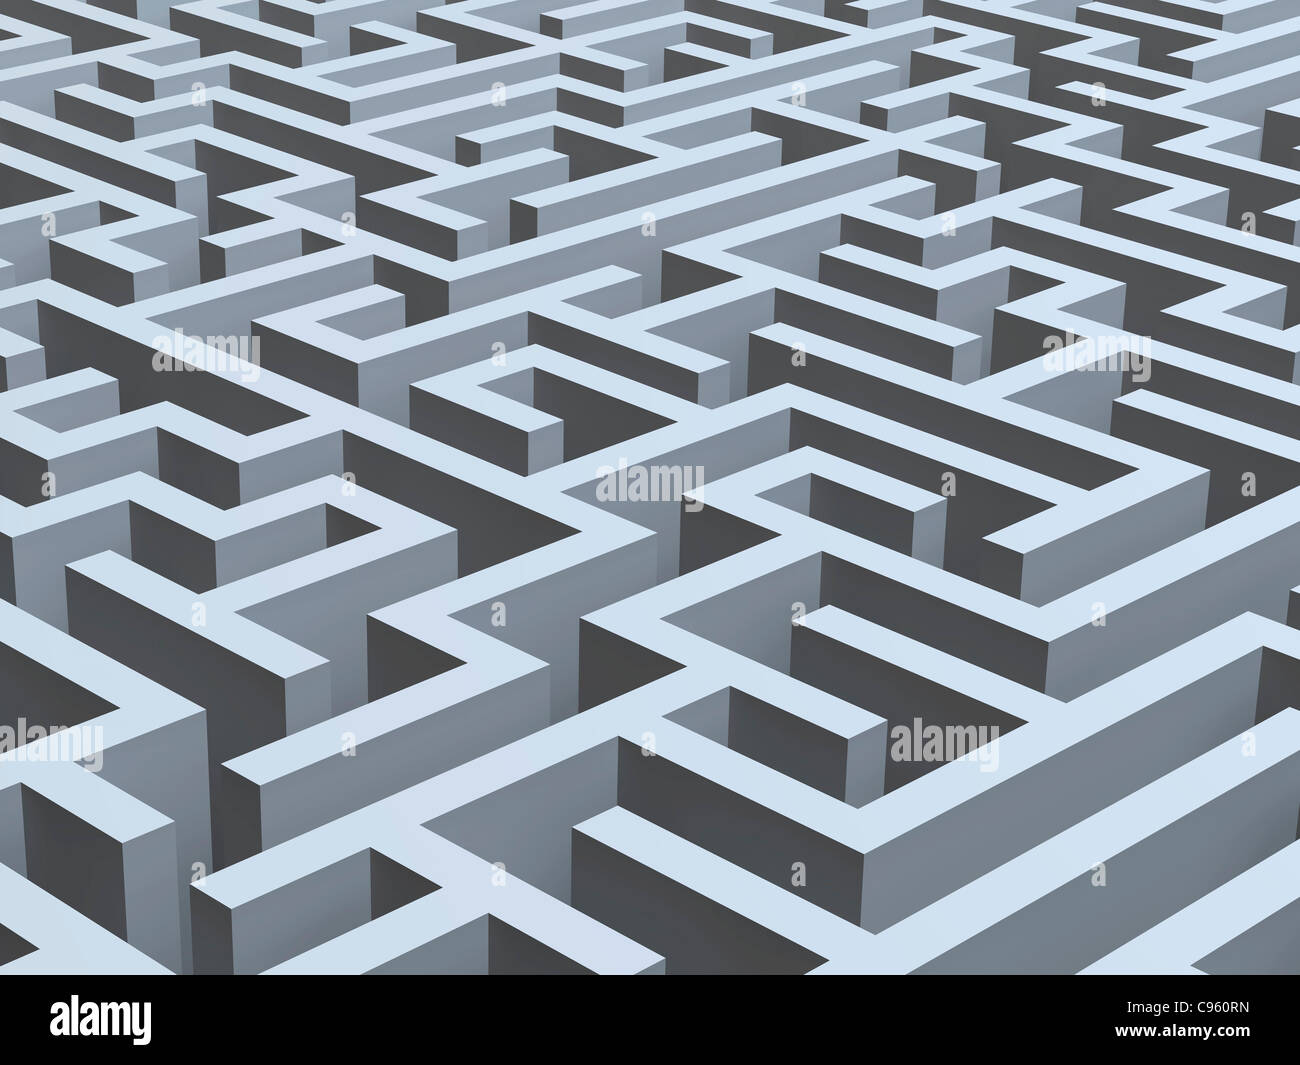 Maze  computer artwork. - Stock Image